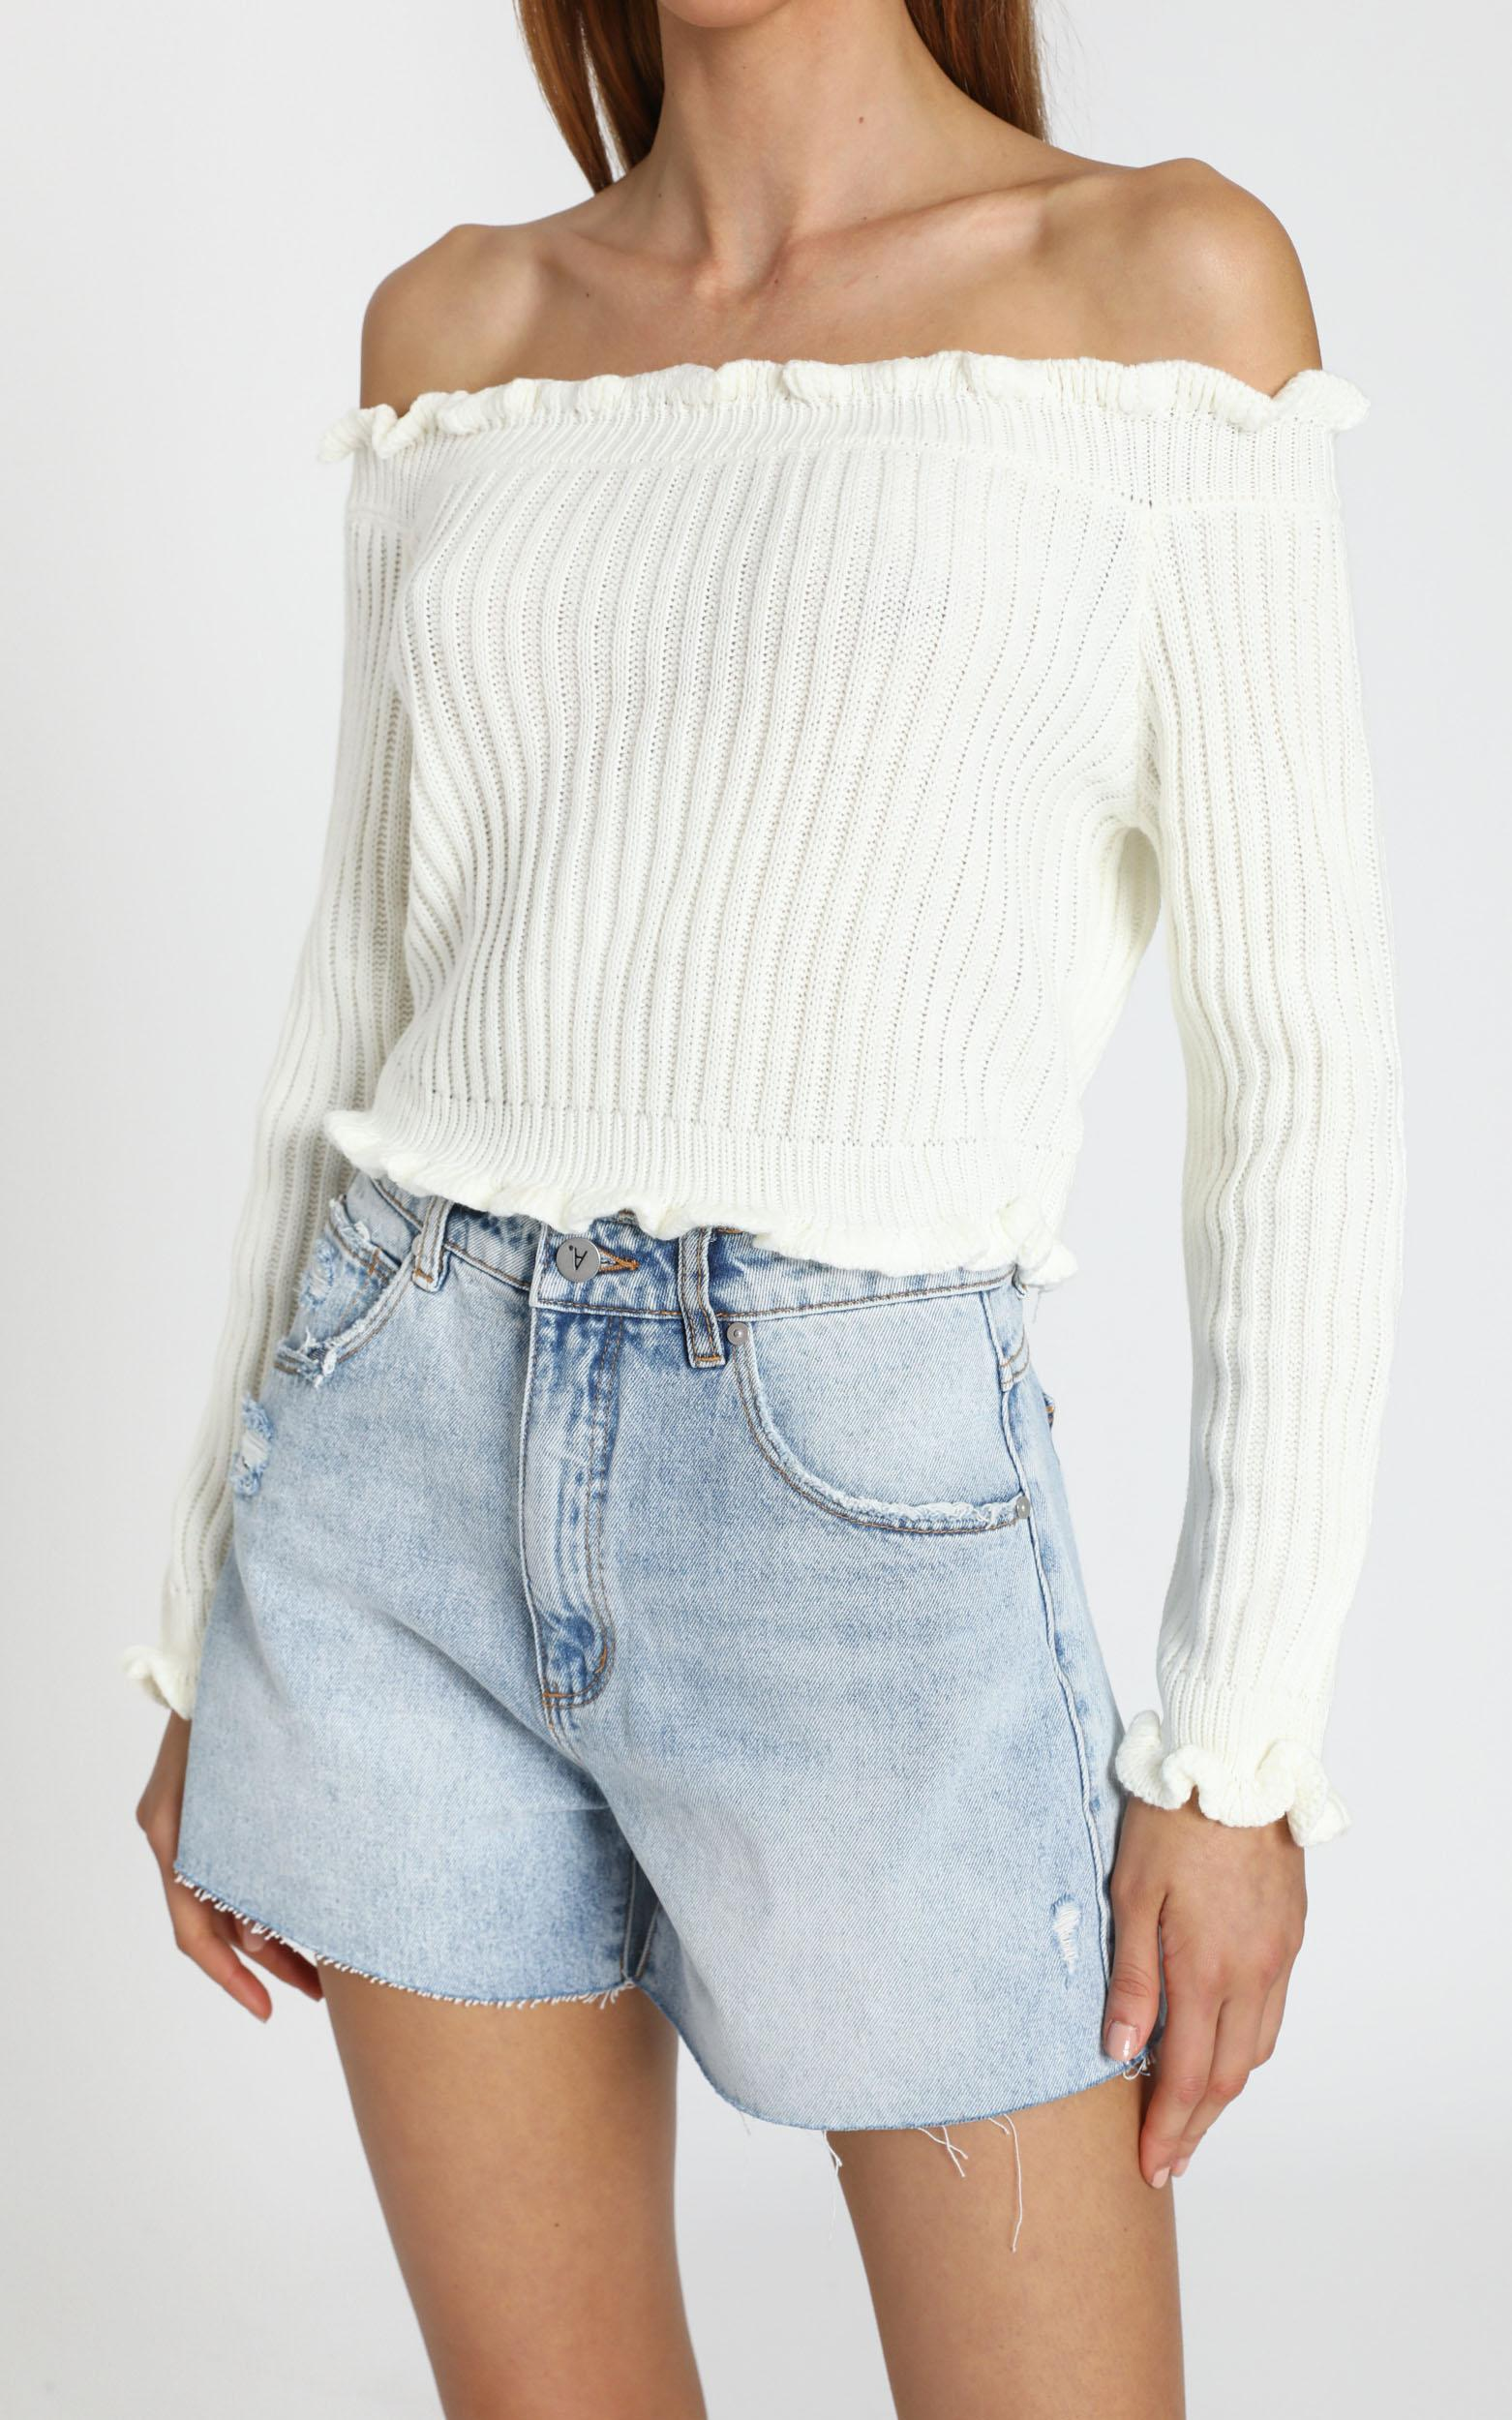 Caught You Staring Knit Jumper in white - 20 (XXXXL), White, hi-res image number null